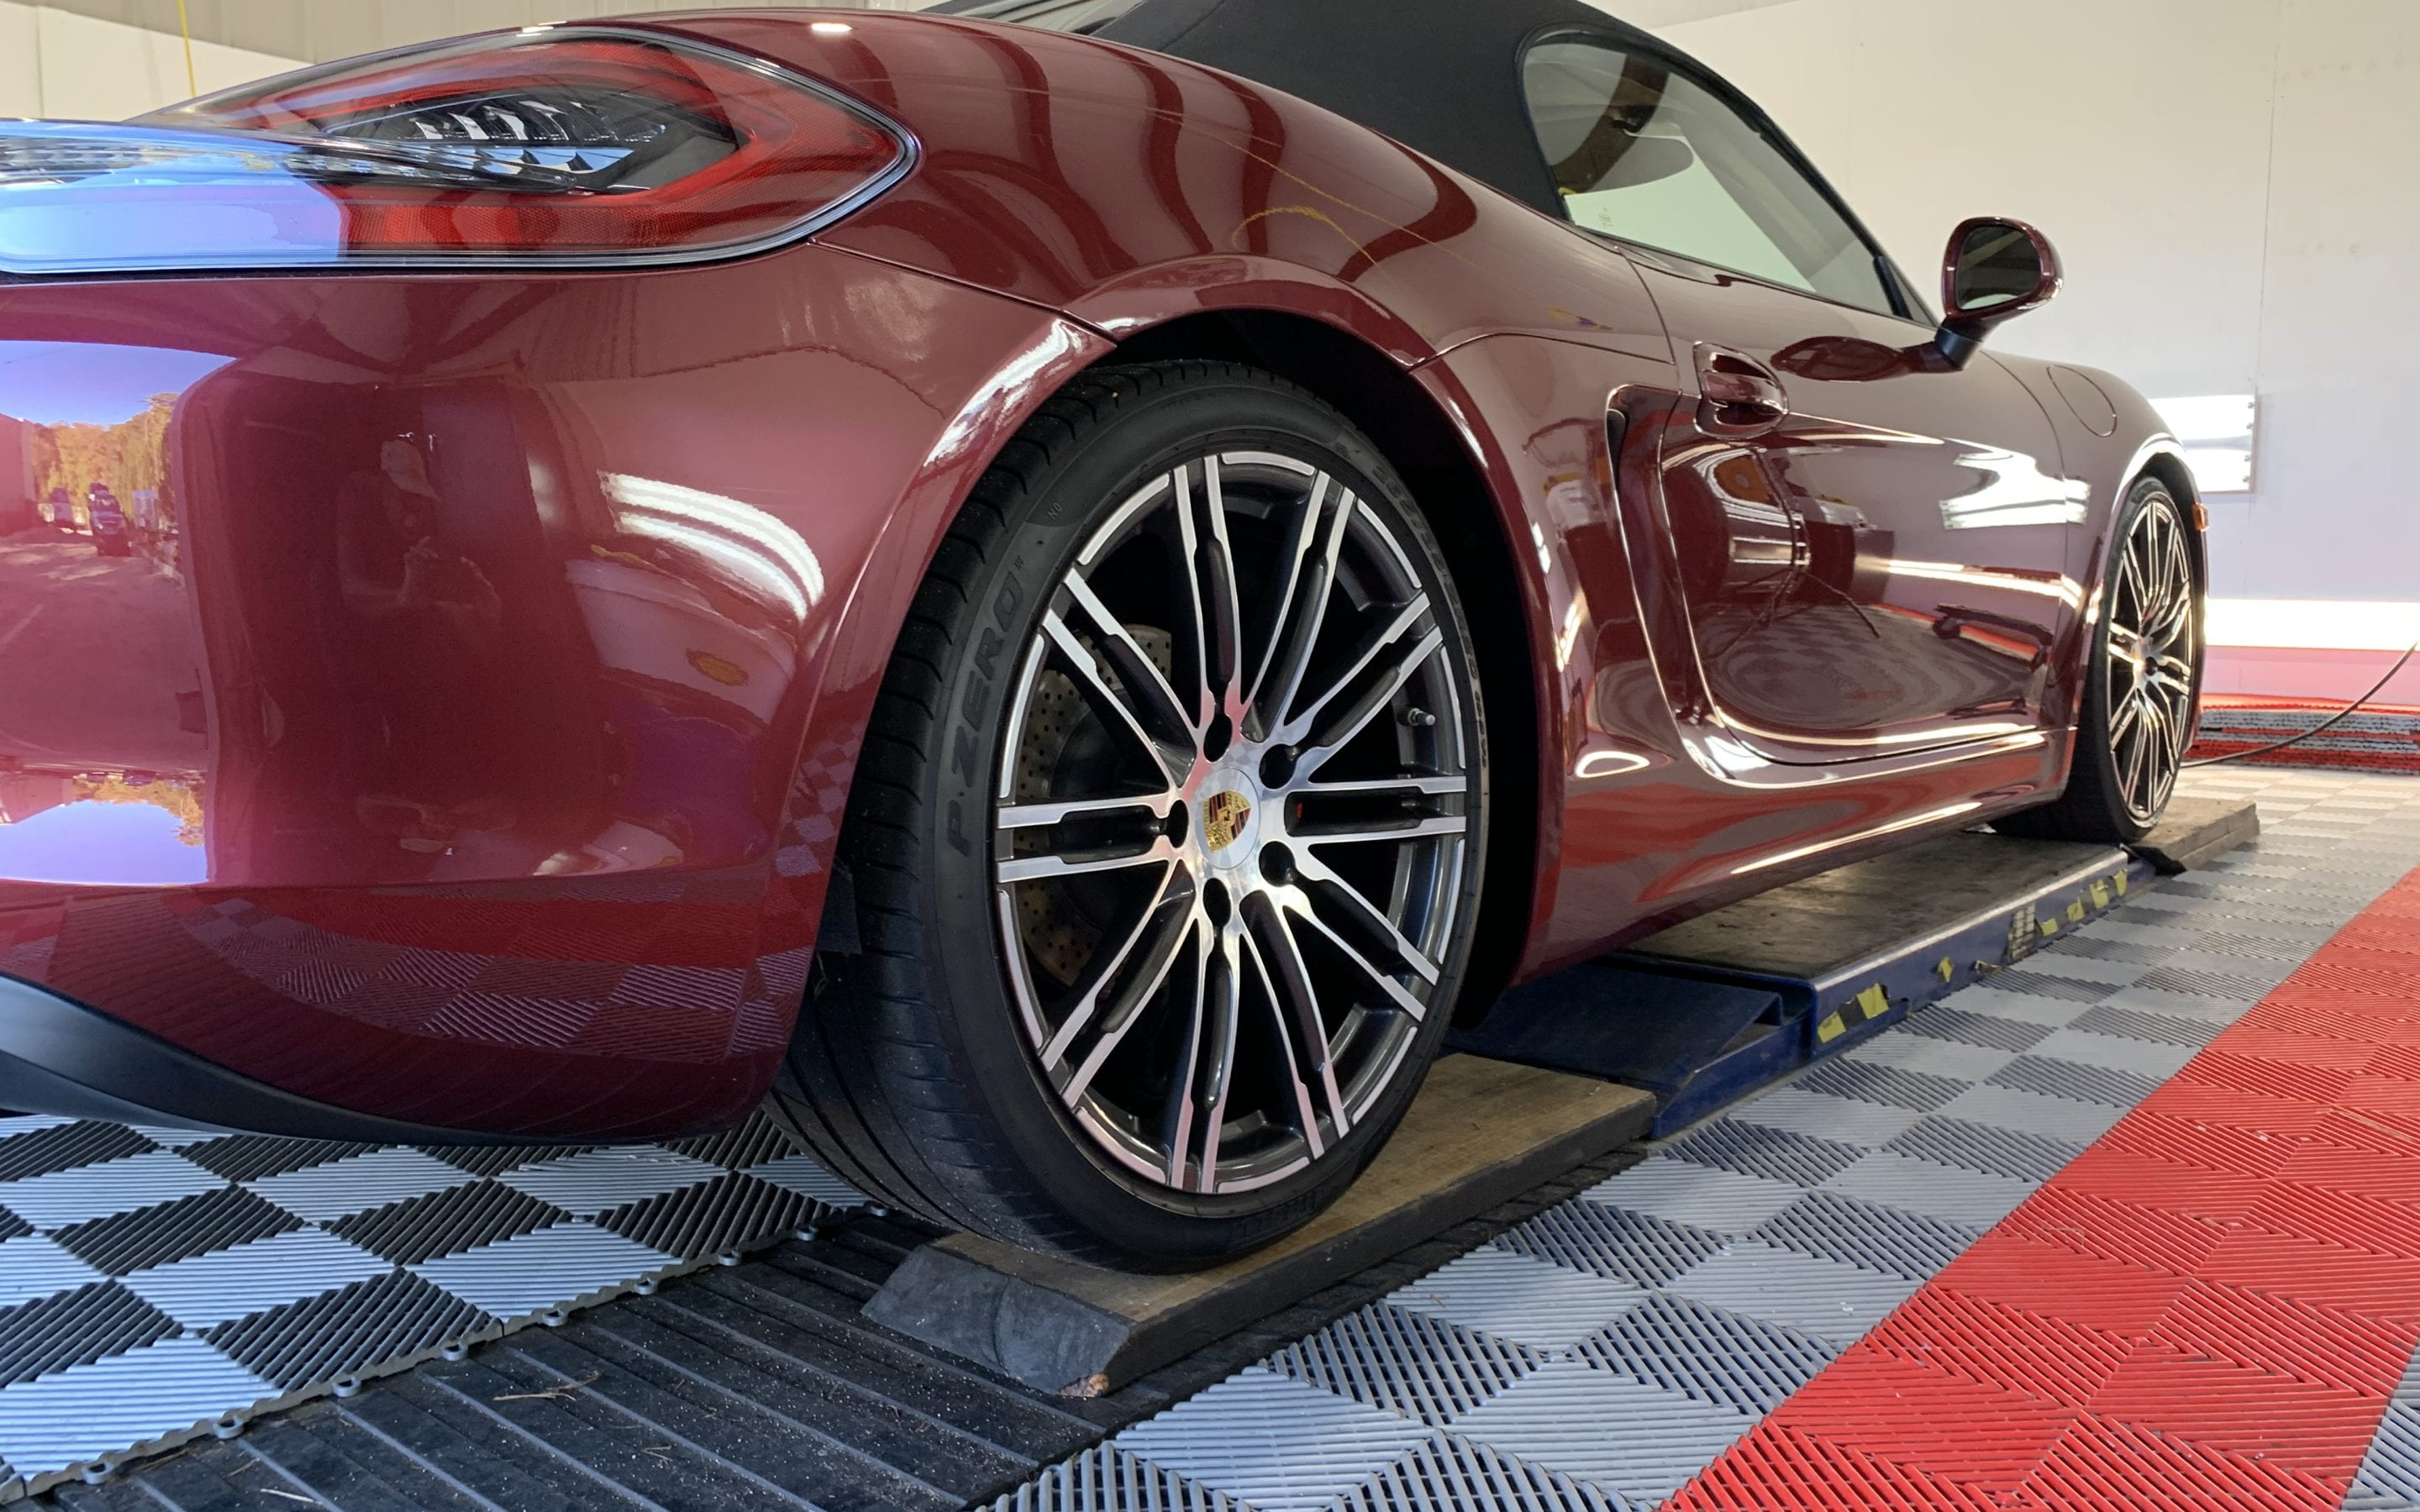 Ceramic Coating of a 2018 Porsche 718 Boxster